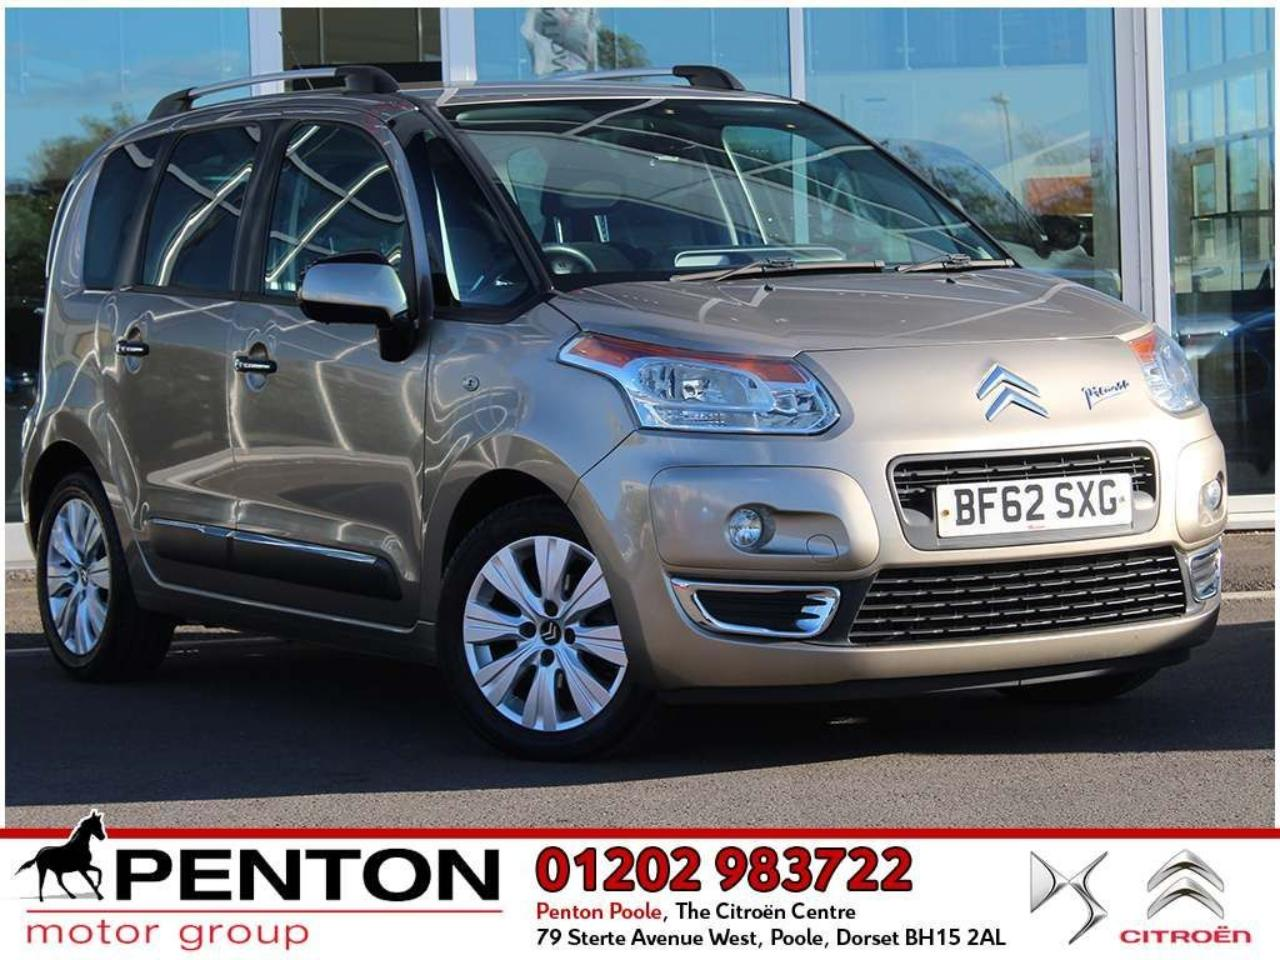 Citroën C3 Picasso 1.6 HDi 8V Exclusive 5dr